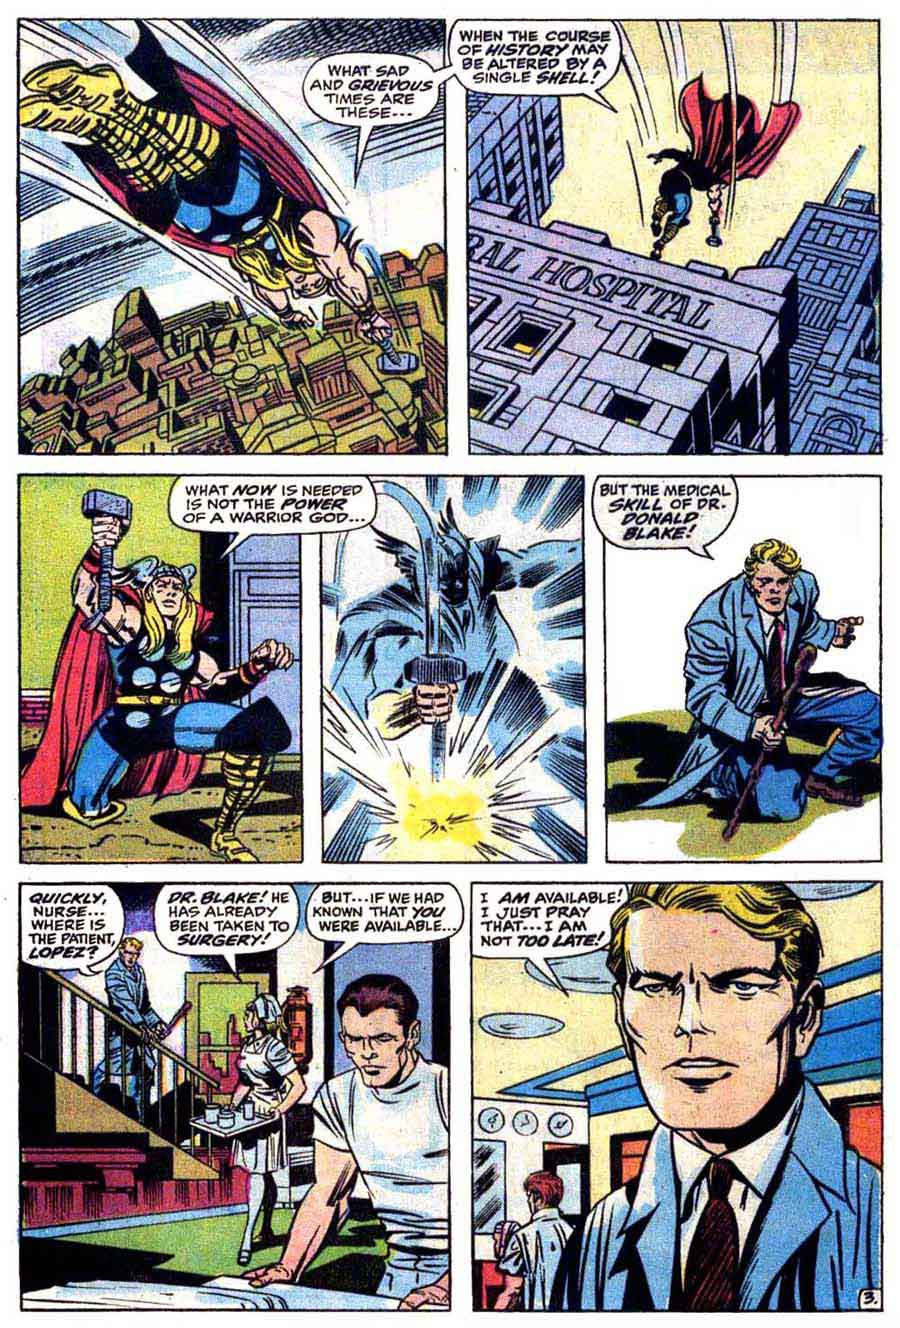 Thor v1 #171 marvel 1970s bronze age comic book page art by Jack Kirby, Bill Everett